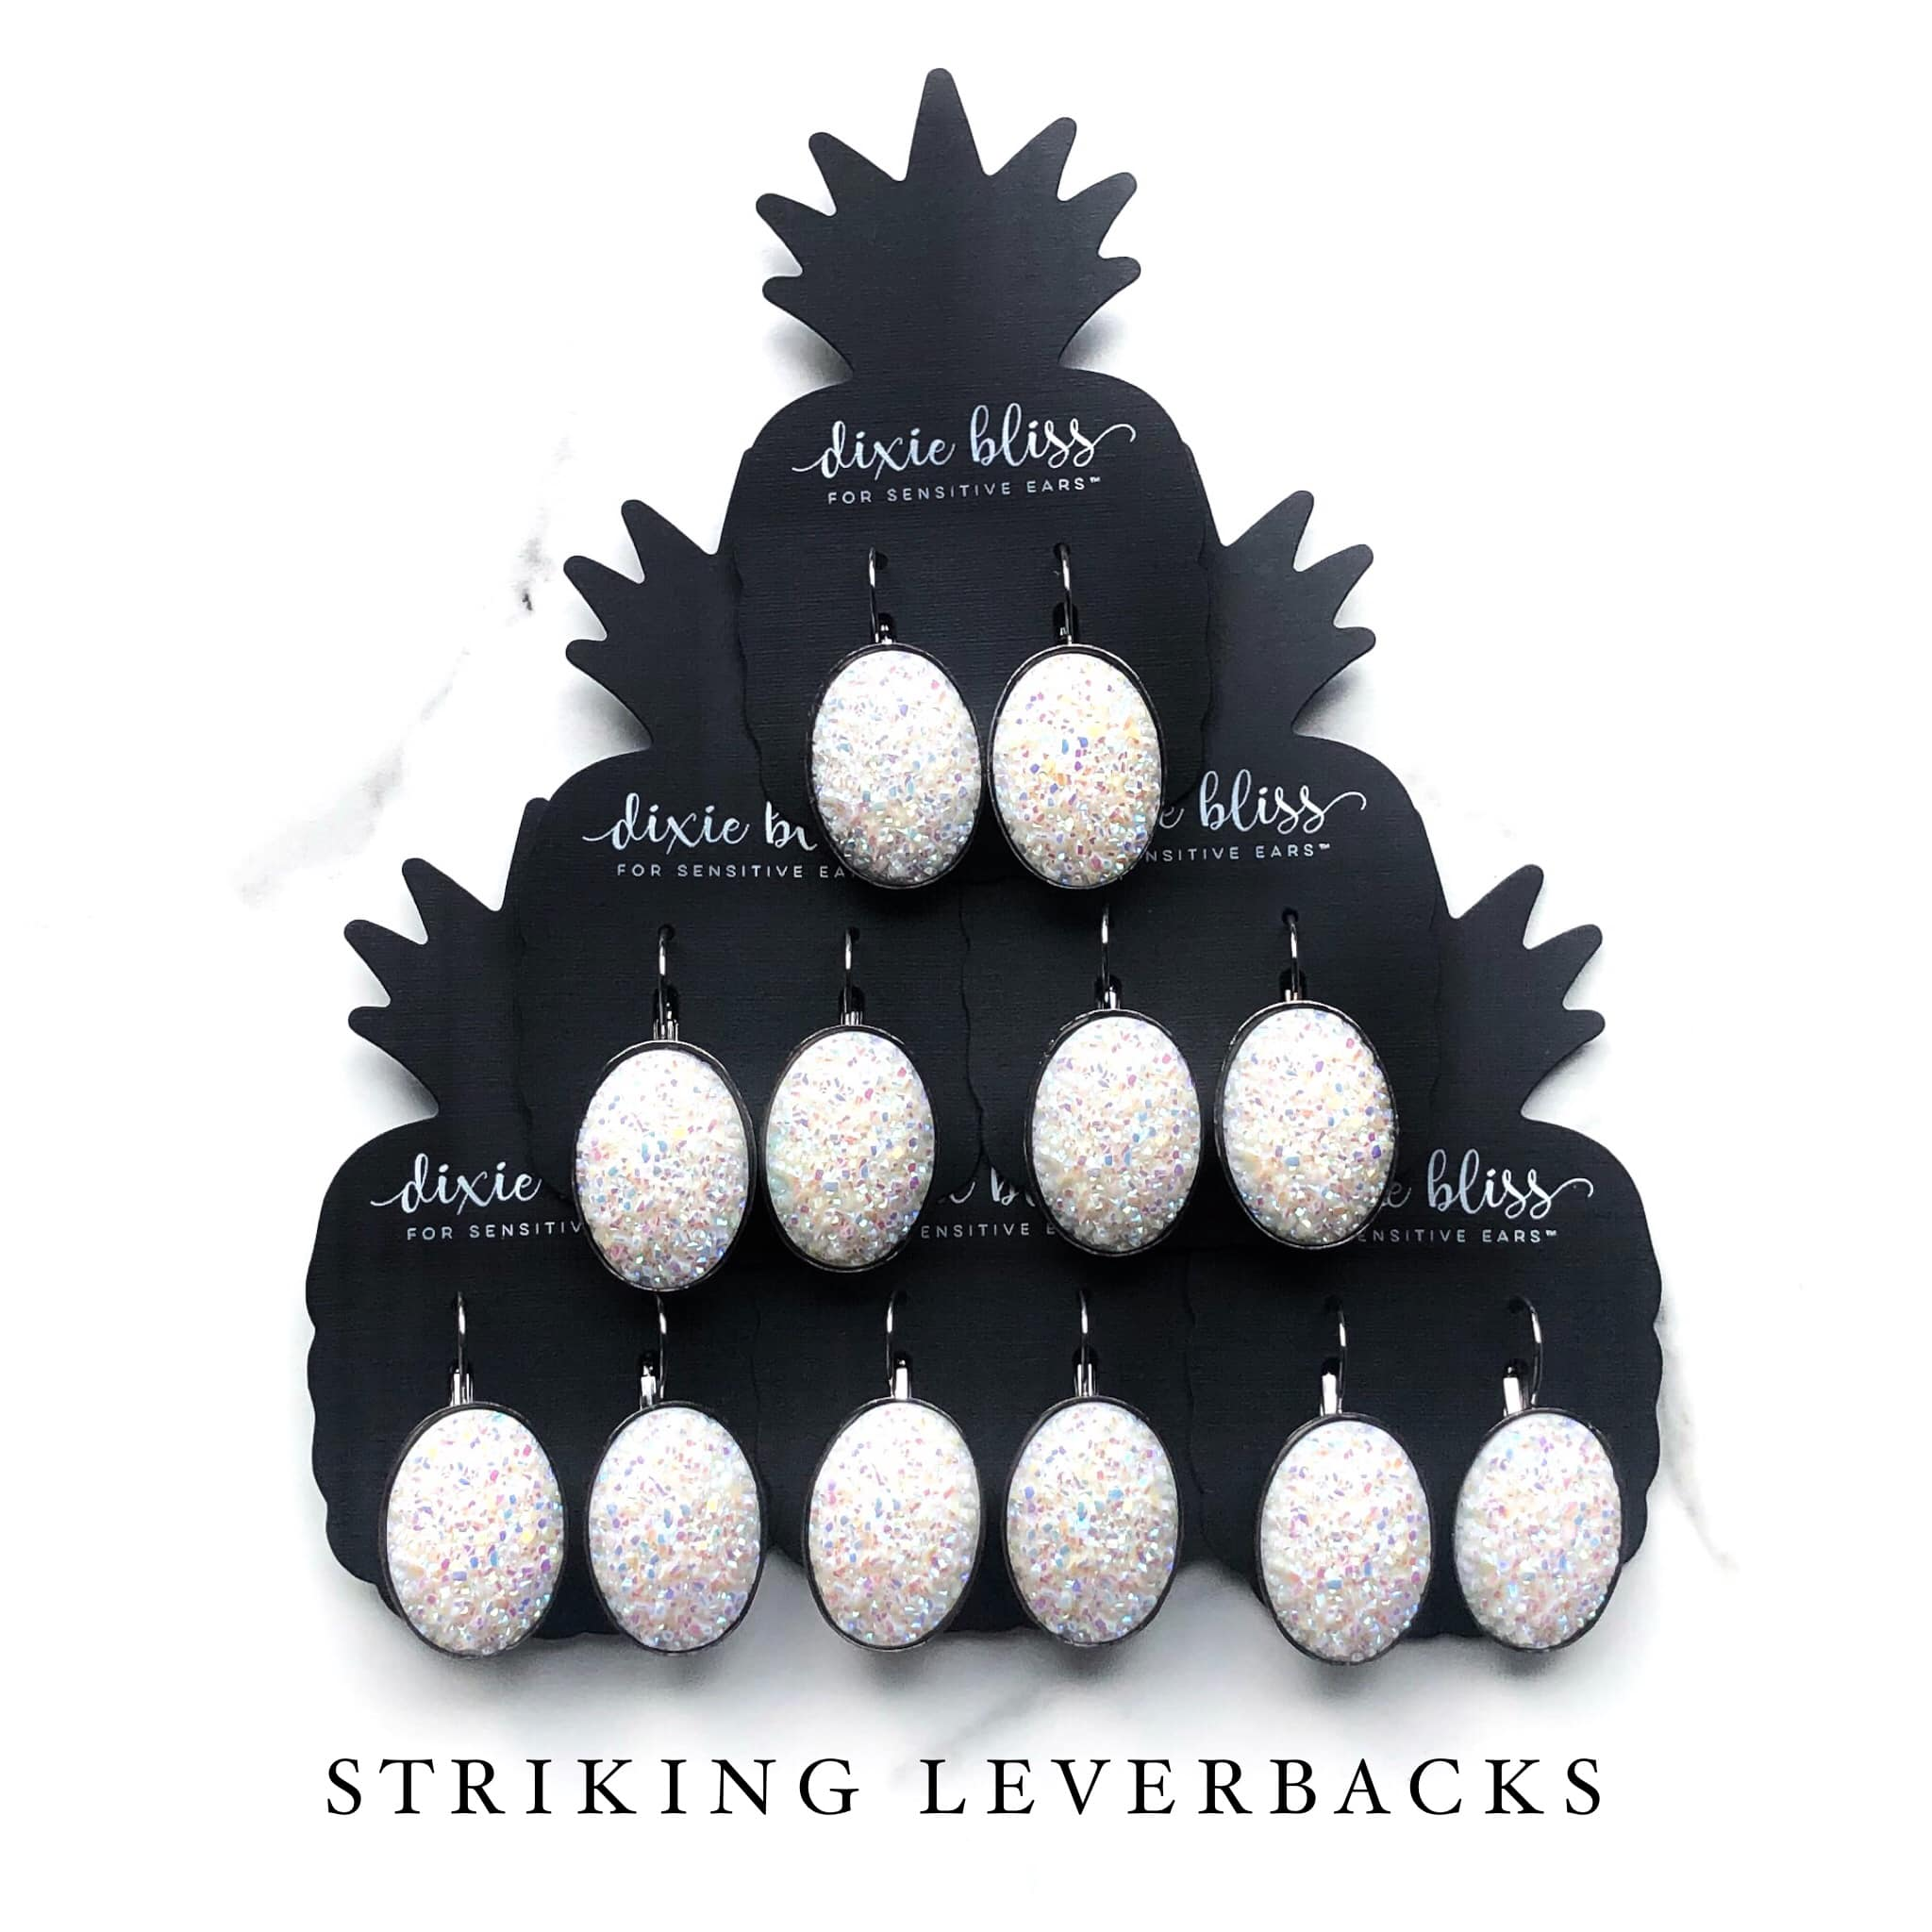 Striking Leverbacks for Sensitive Ears - Sandy Bums Boutique